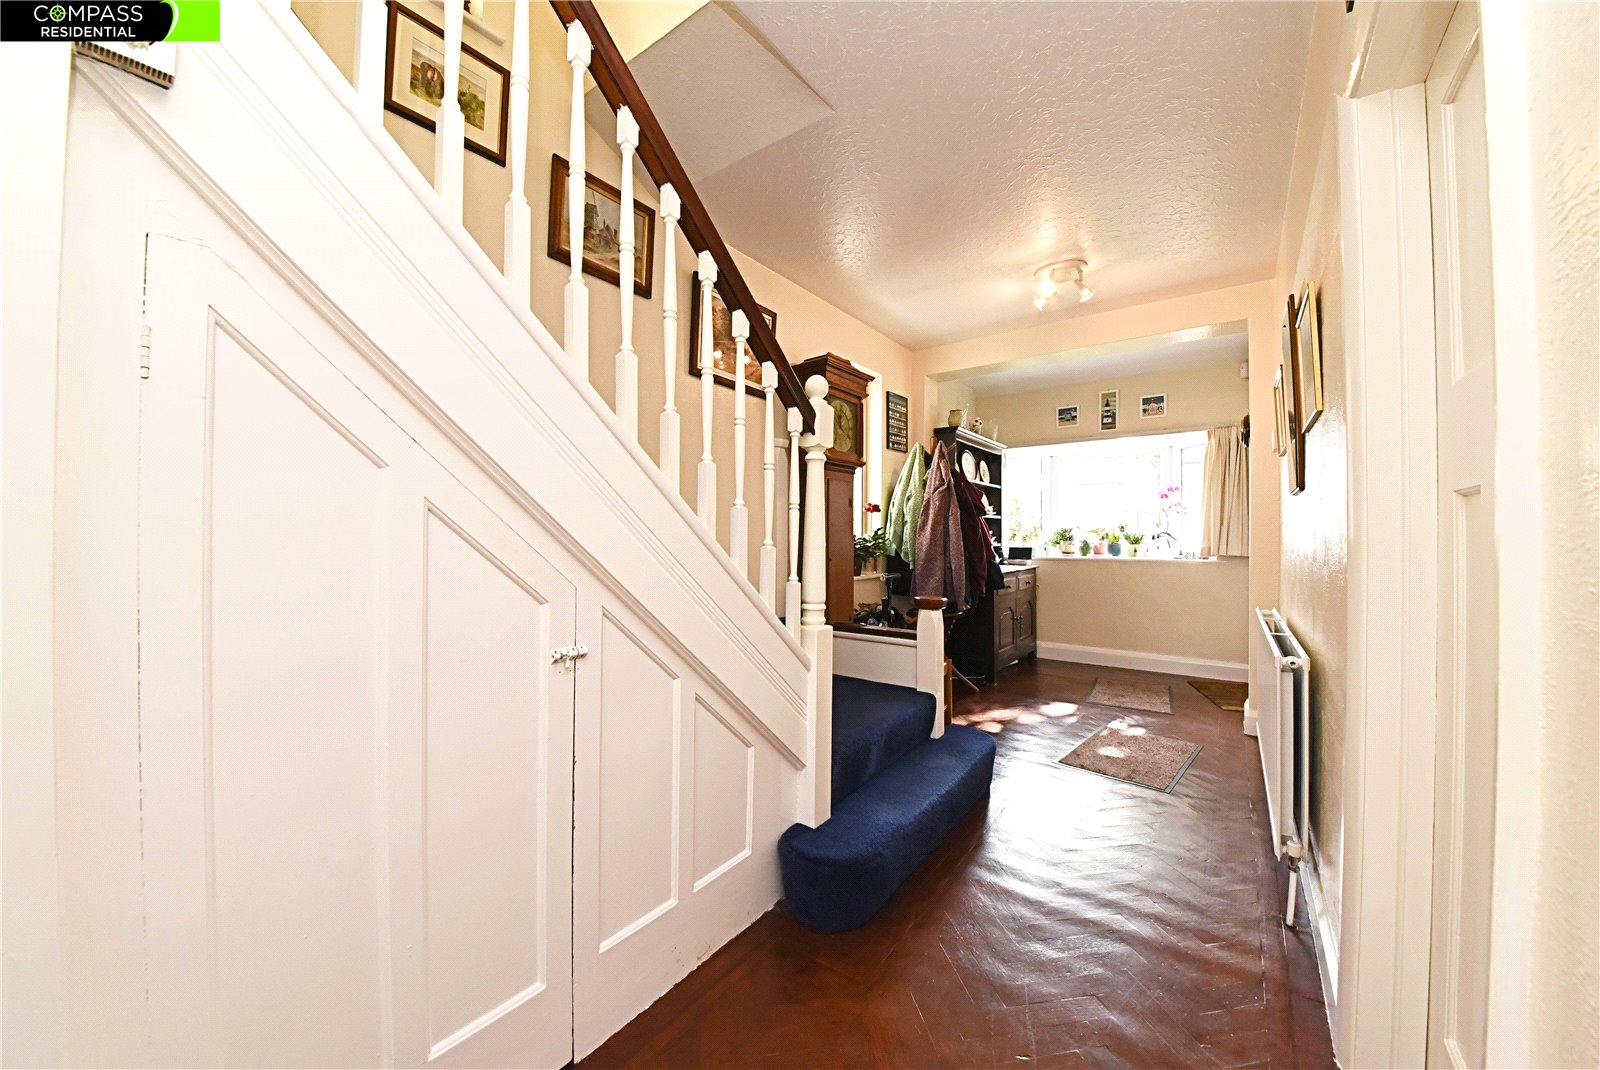 3 bed house for sale in Totteridge, N20 8HL  - Property Image 11